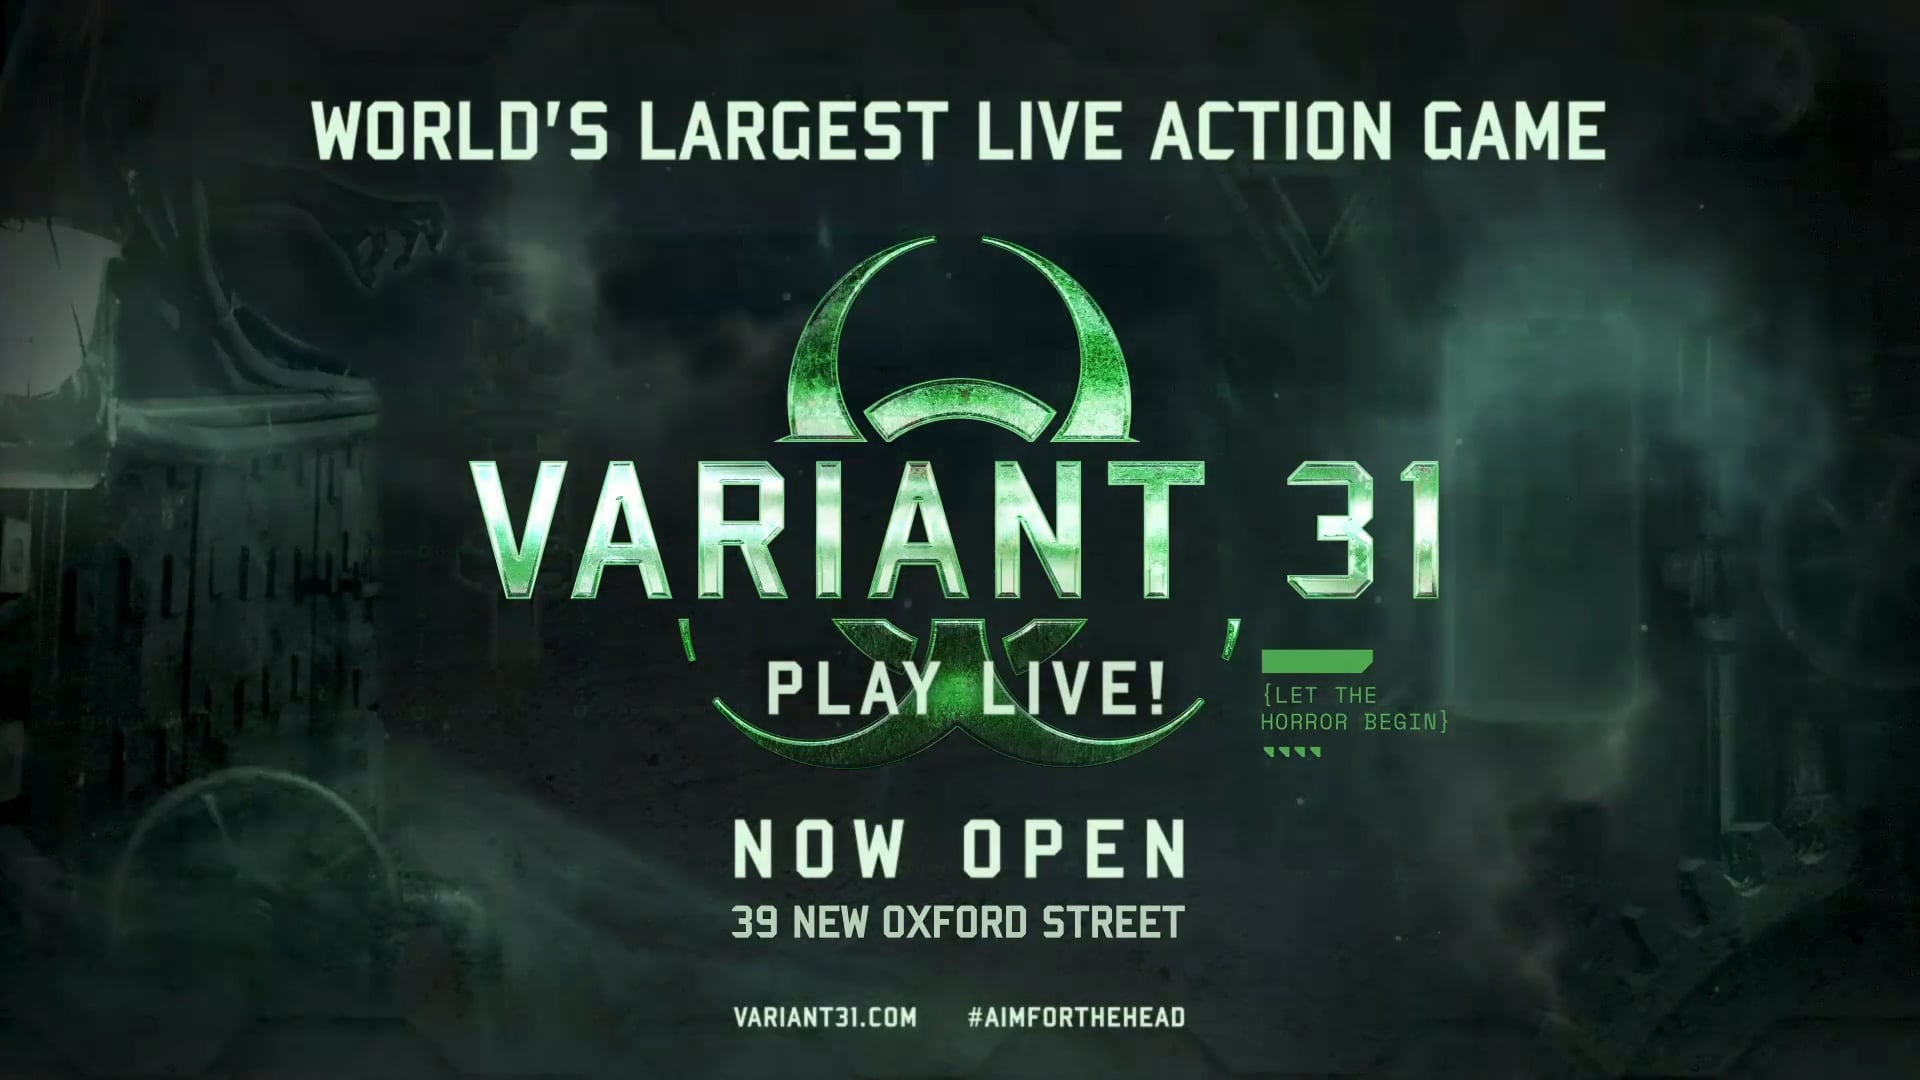 Variant 31: The Worlds's Largest Live Action Game (GAMEPLAY TEASER)